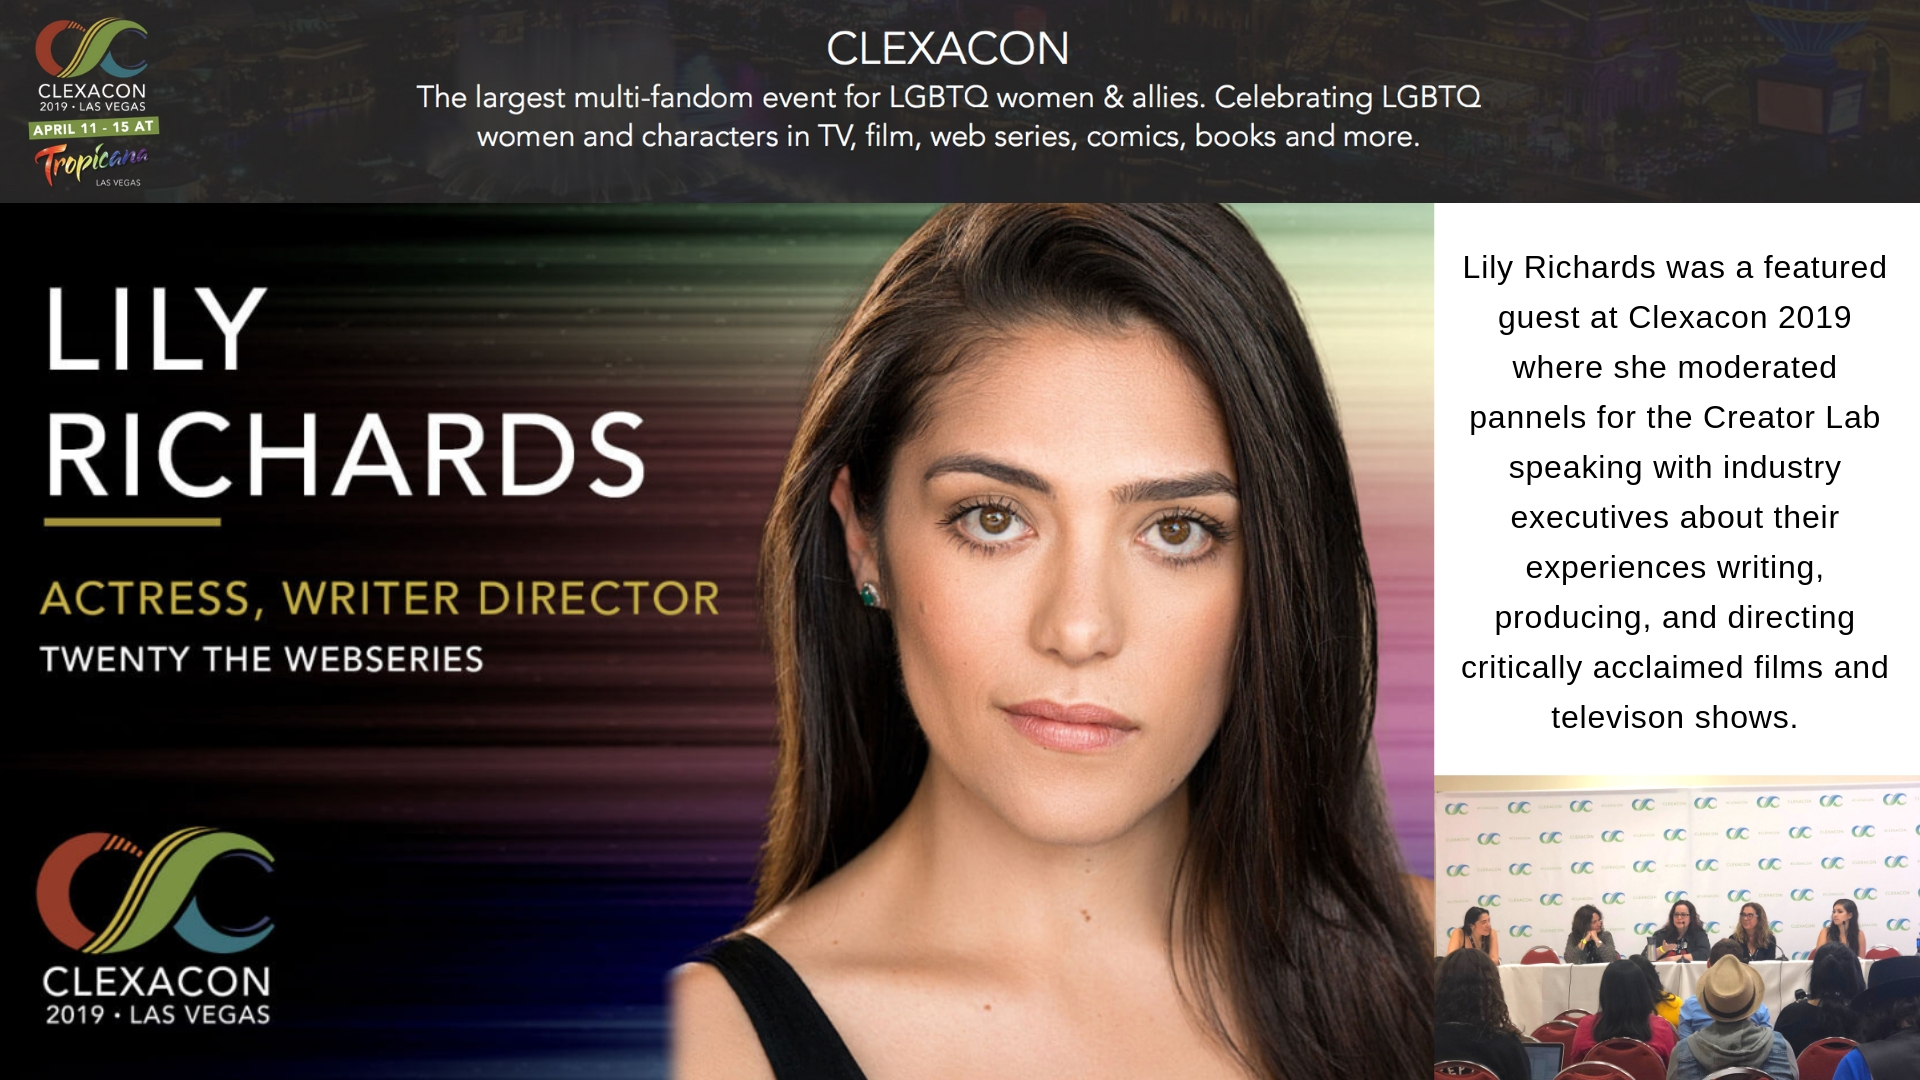 Lily Richards was a featured guest at Clexacon 2019 where she moderated pannels for the Creator Lab speaking with industry executives about their experiences writing, producing, and directing critically acclaimed fil-2.jpg